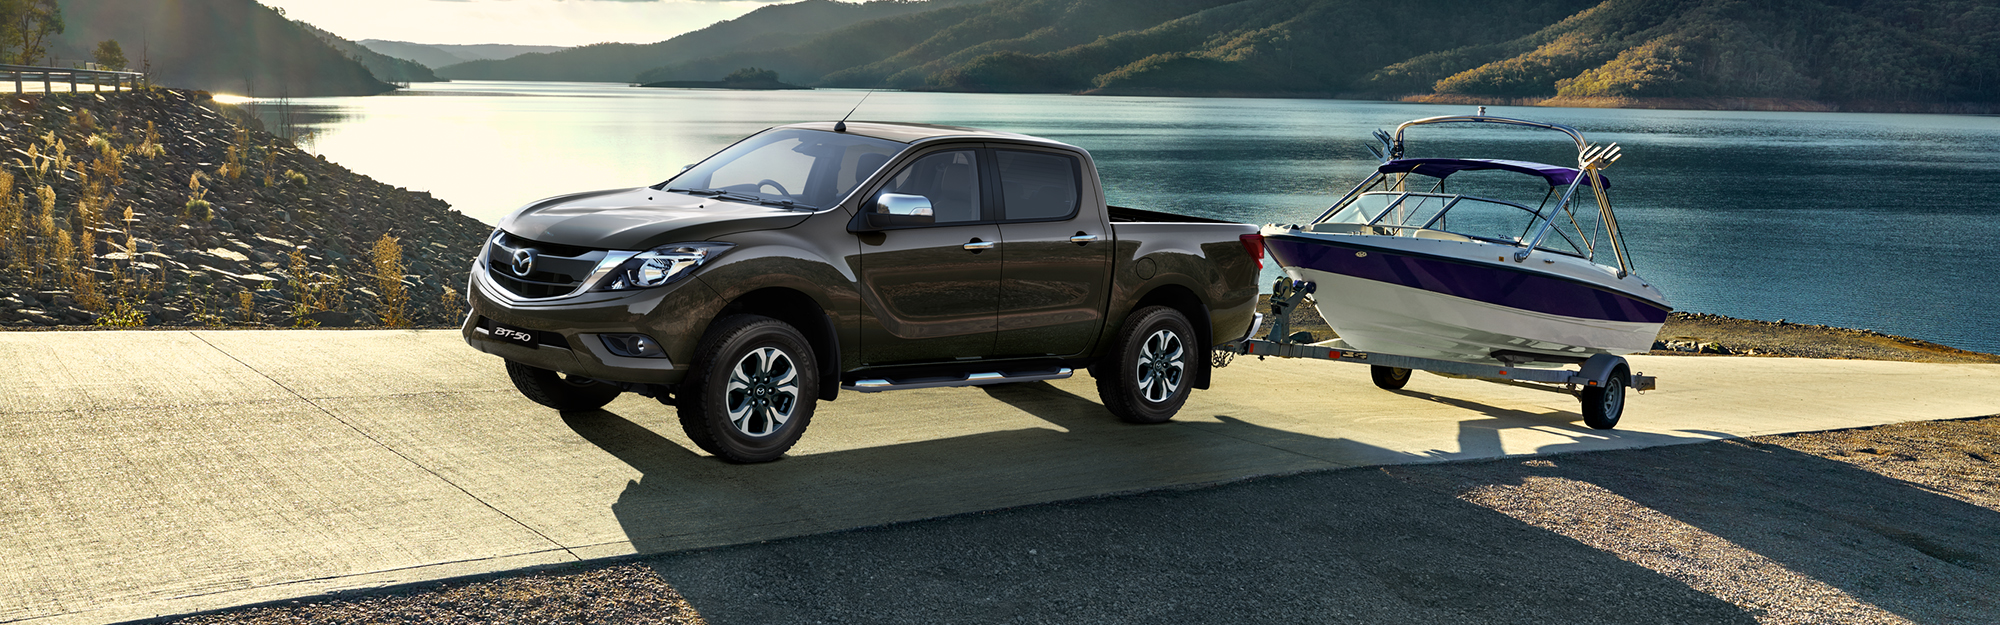 mazda bt 50 pickup 2017 2 5l double cab pro 4wd m t in oman new car prices specs reviews. Black Bedroom Furniture Sets. Home Design Ideas